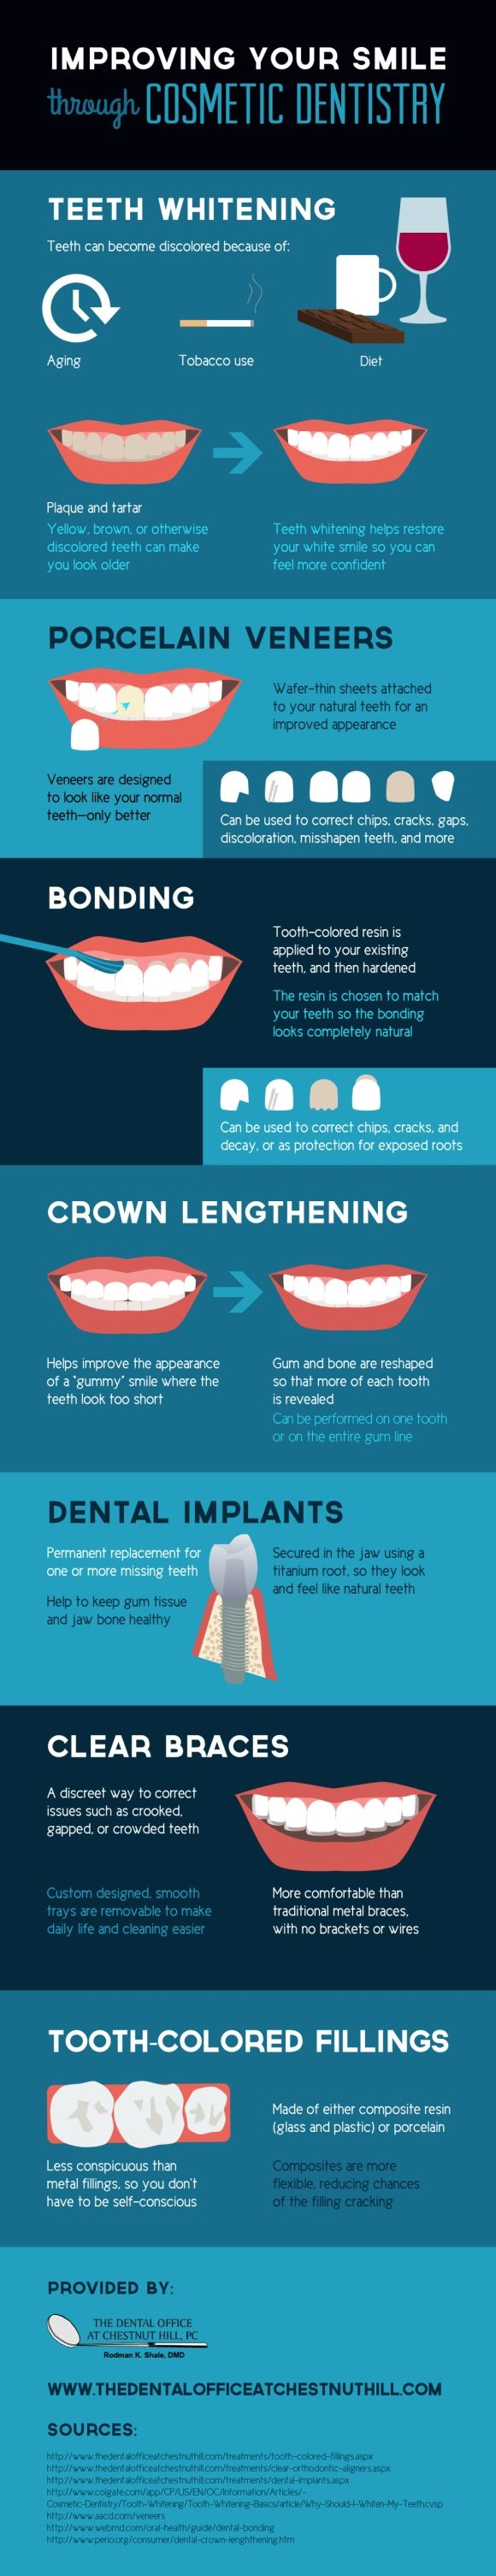 Are porcelain veneers the right choice for your smile? These are wafer-thin sheets attached to your natural teeth to improve the appearance of chips, cracks, gaps, discoloration, and more. Look over this infographic about dental care in Newton to see other cosmetic procedures.